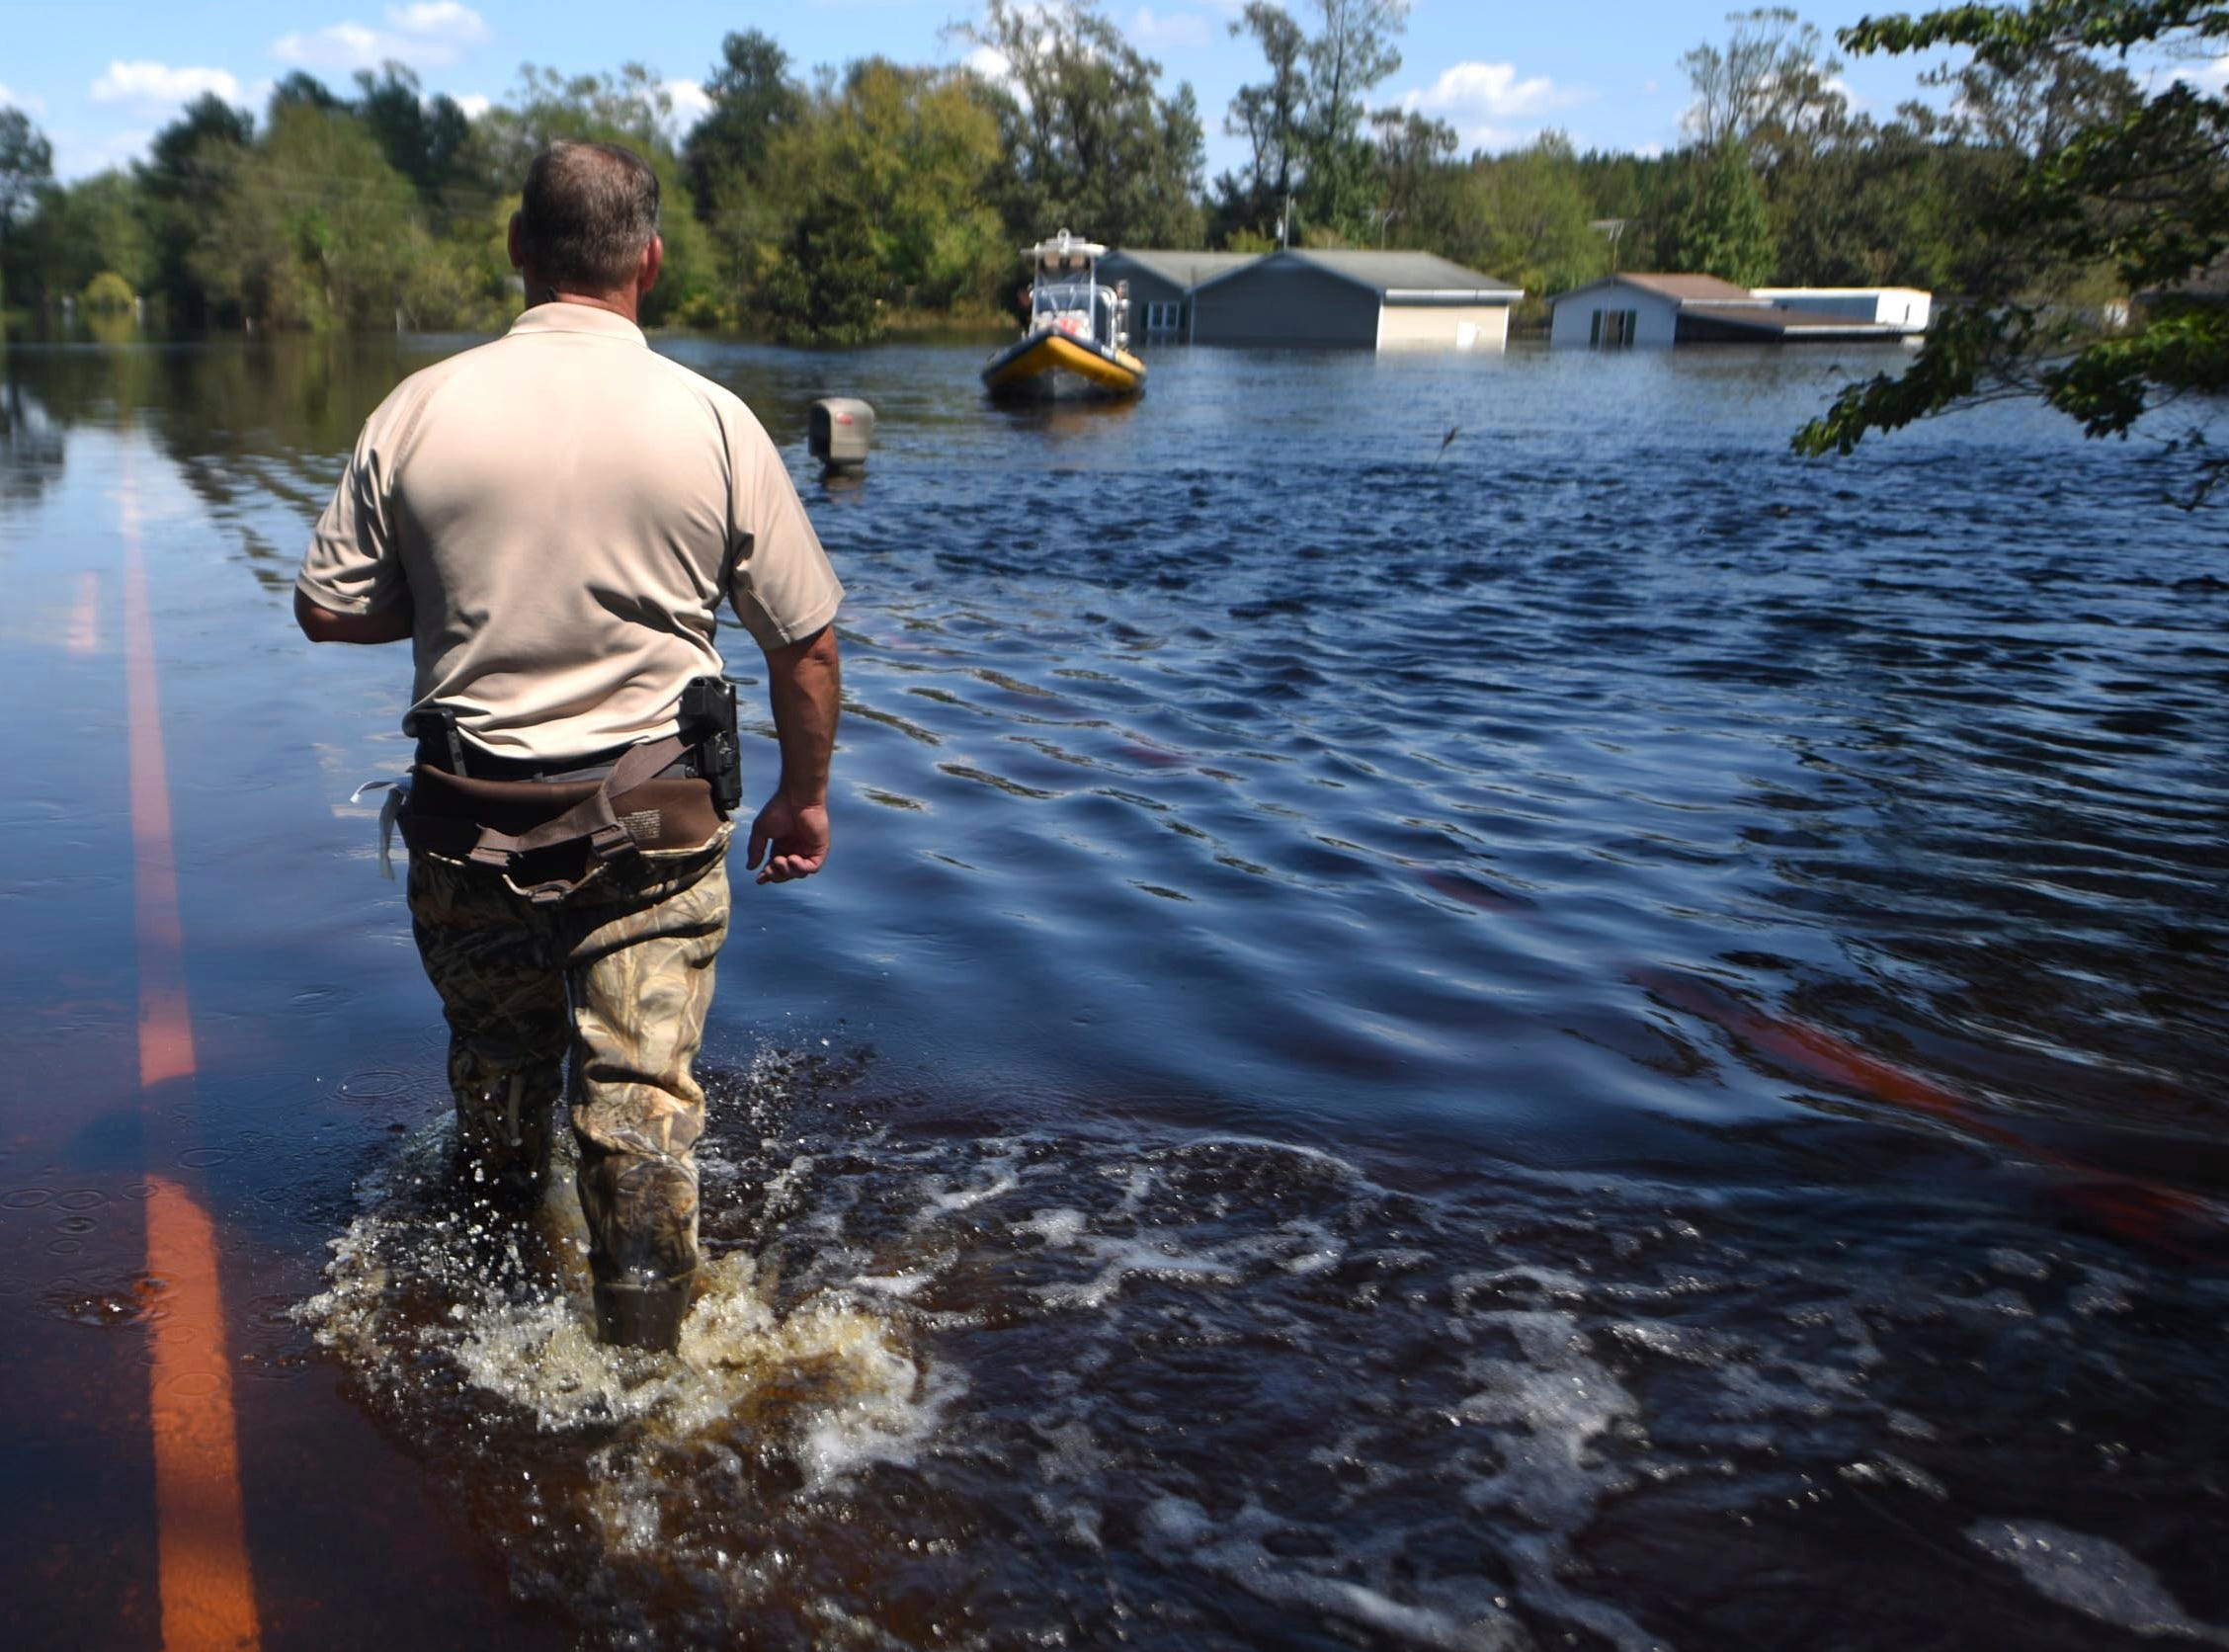 Lt. Keith Ramsey with the Pender County Sheriff's Office walks out to a boat while taking part in rescue operations in Burgaw, N.C., Wednesday, Sept. 19, 2018. A large area east of Burgaw is experiencing severe flooding from the Northeast Cape Fear River due to the rains from Hurricane Florence.